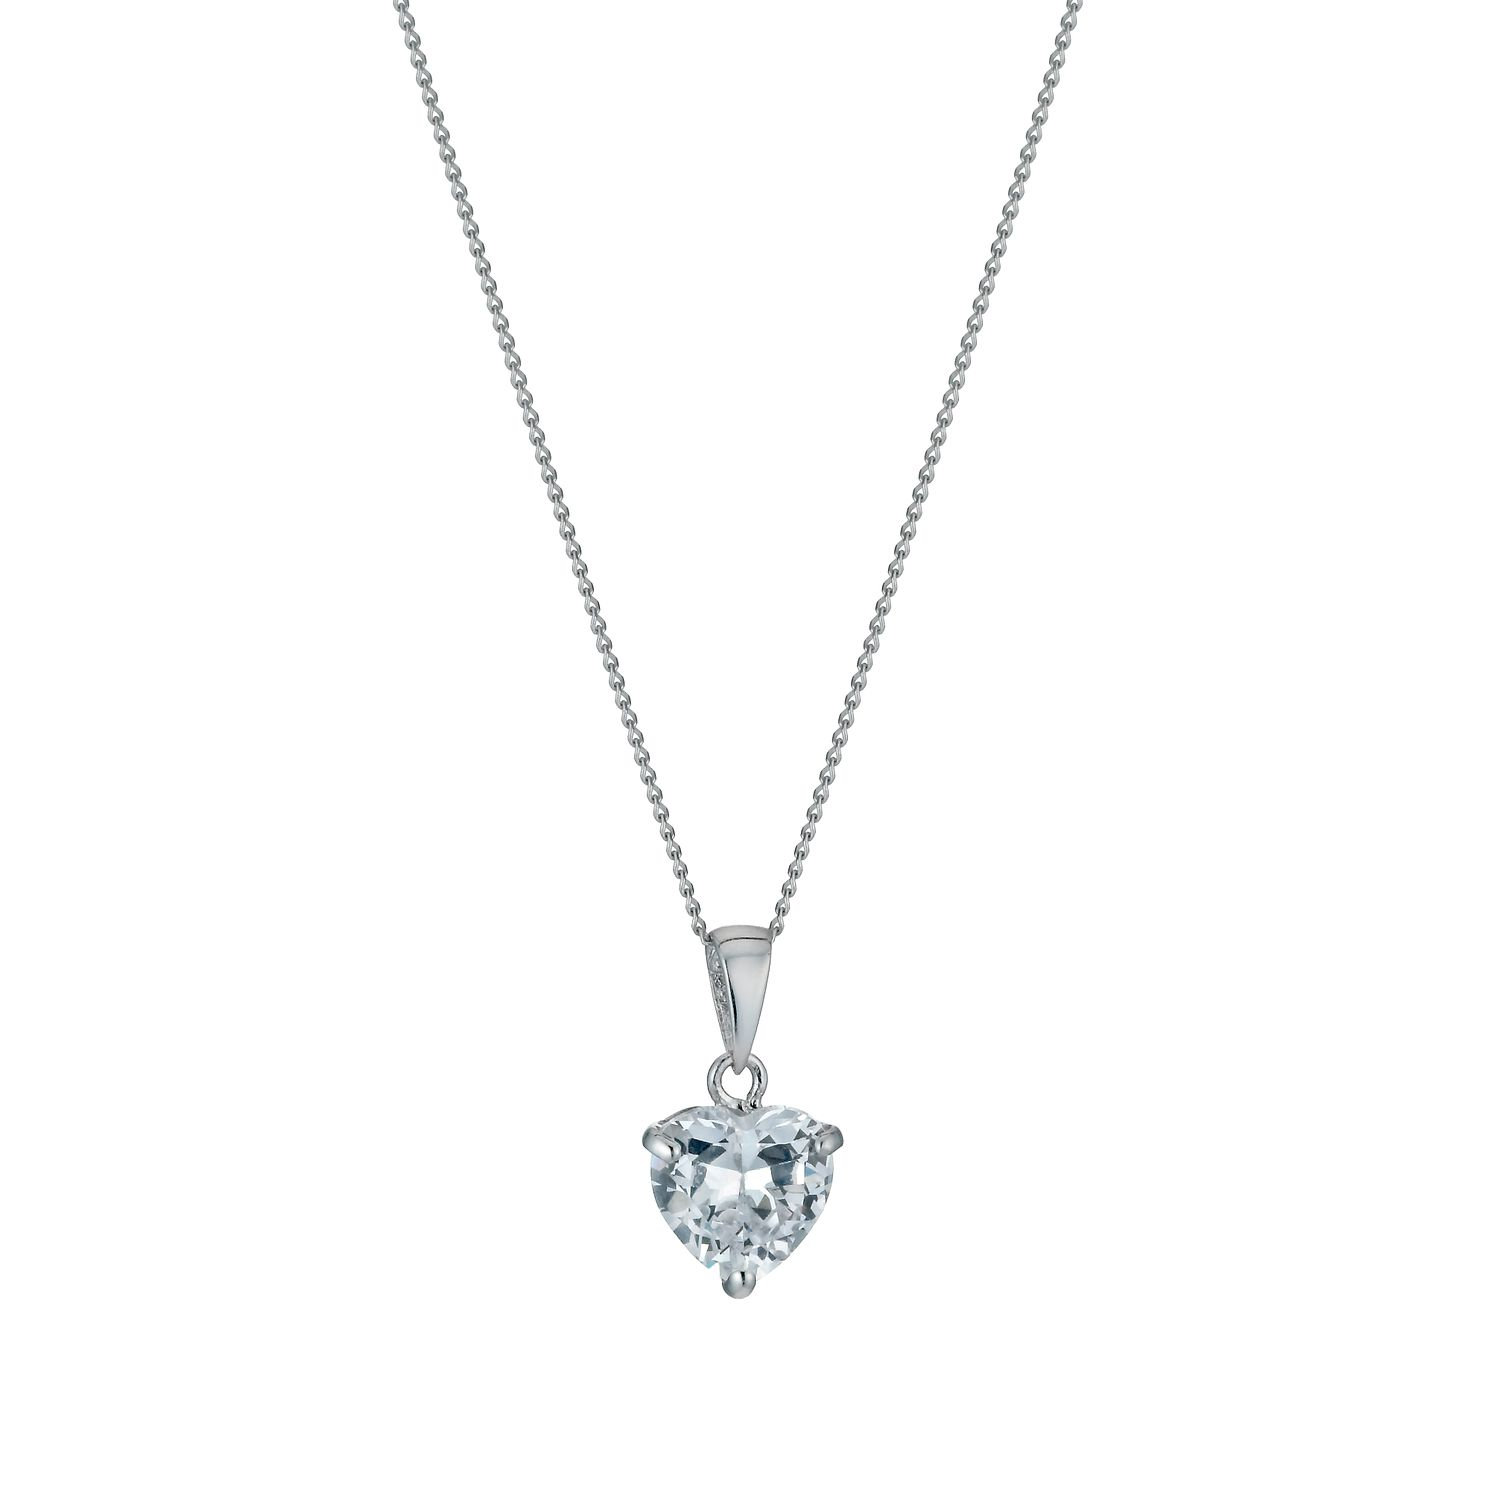 9ct White Gold 18 inches Cubic Zirconia Heart Pendant - Product number 1109928